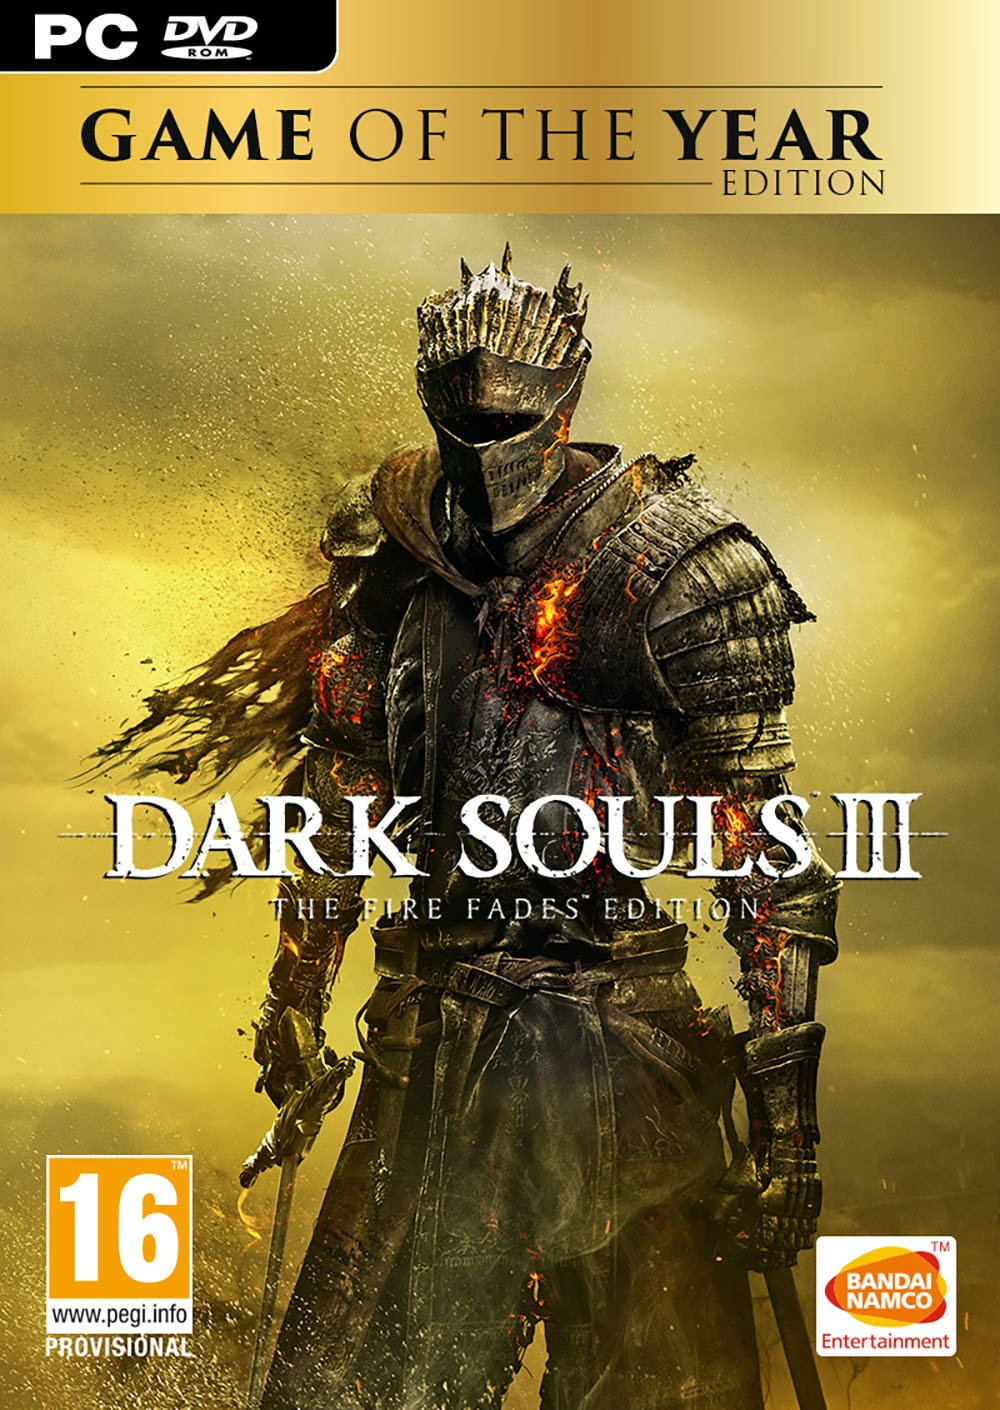 Dark Souls 3: Fire Fades GoTY Edition PC Game.